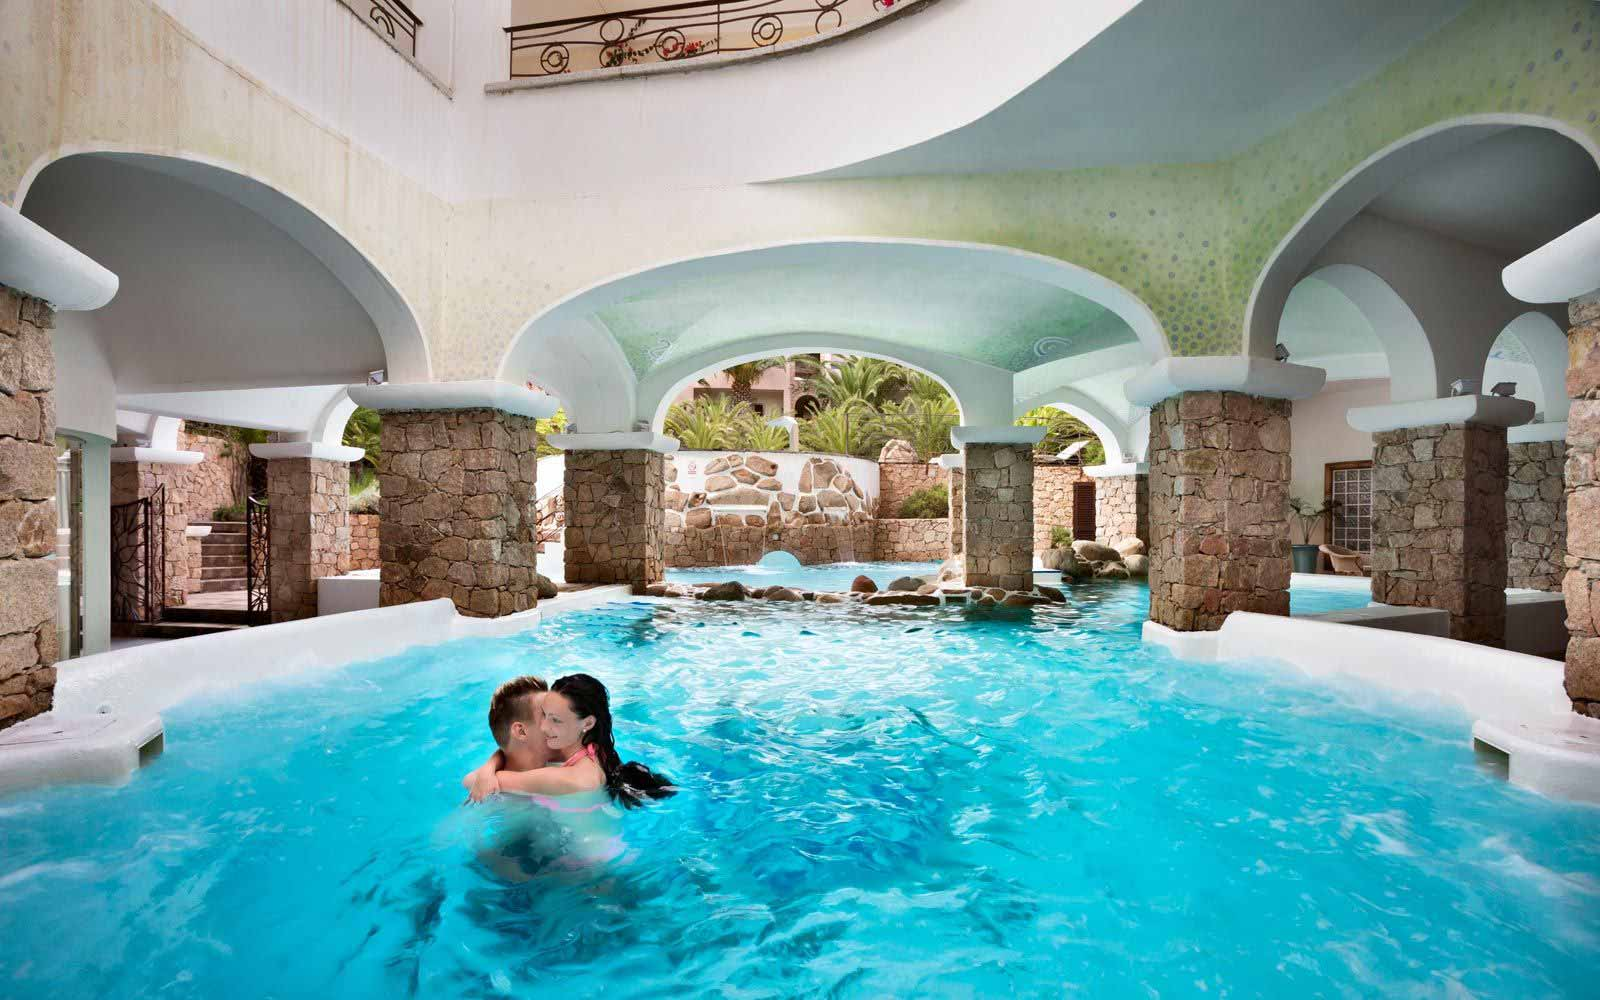 Thalasso Pool at Hotel Relax Torreruja Thalasso & Spa